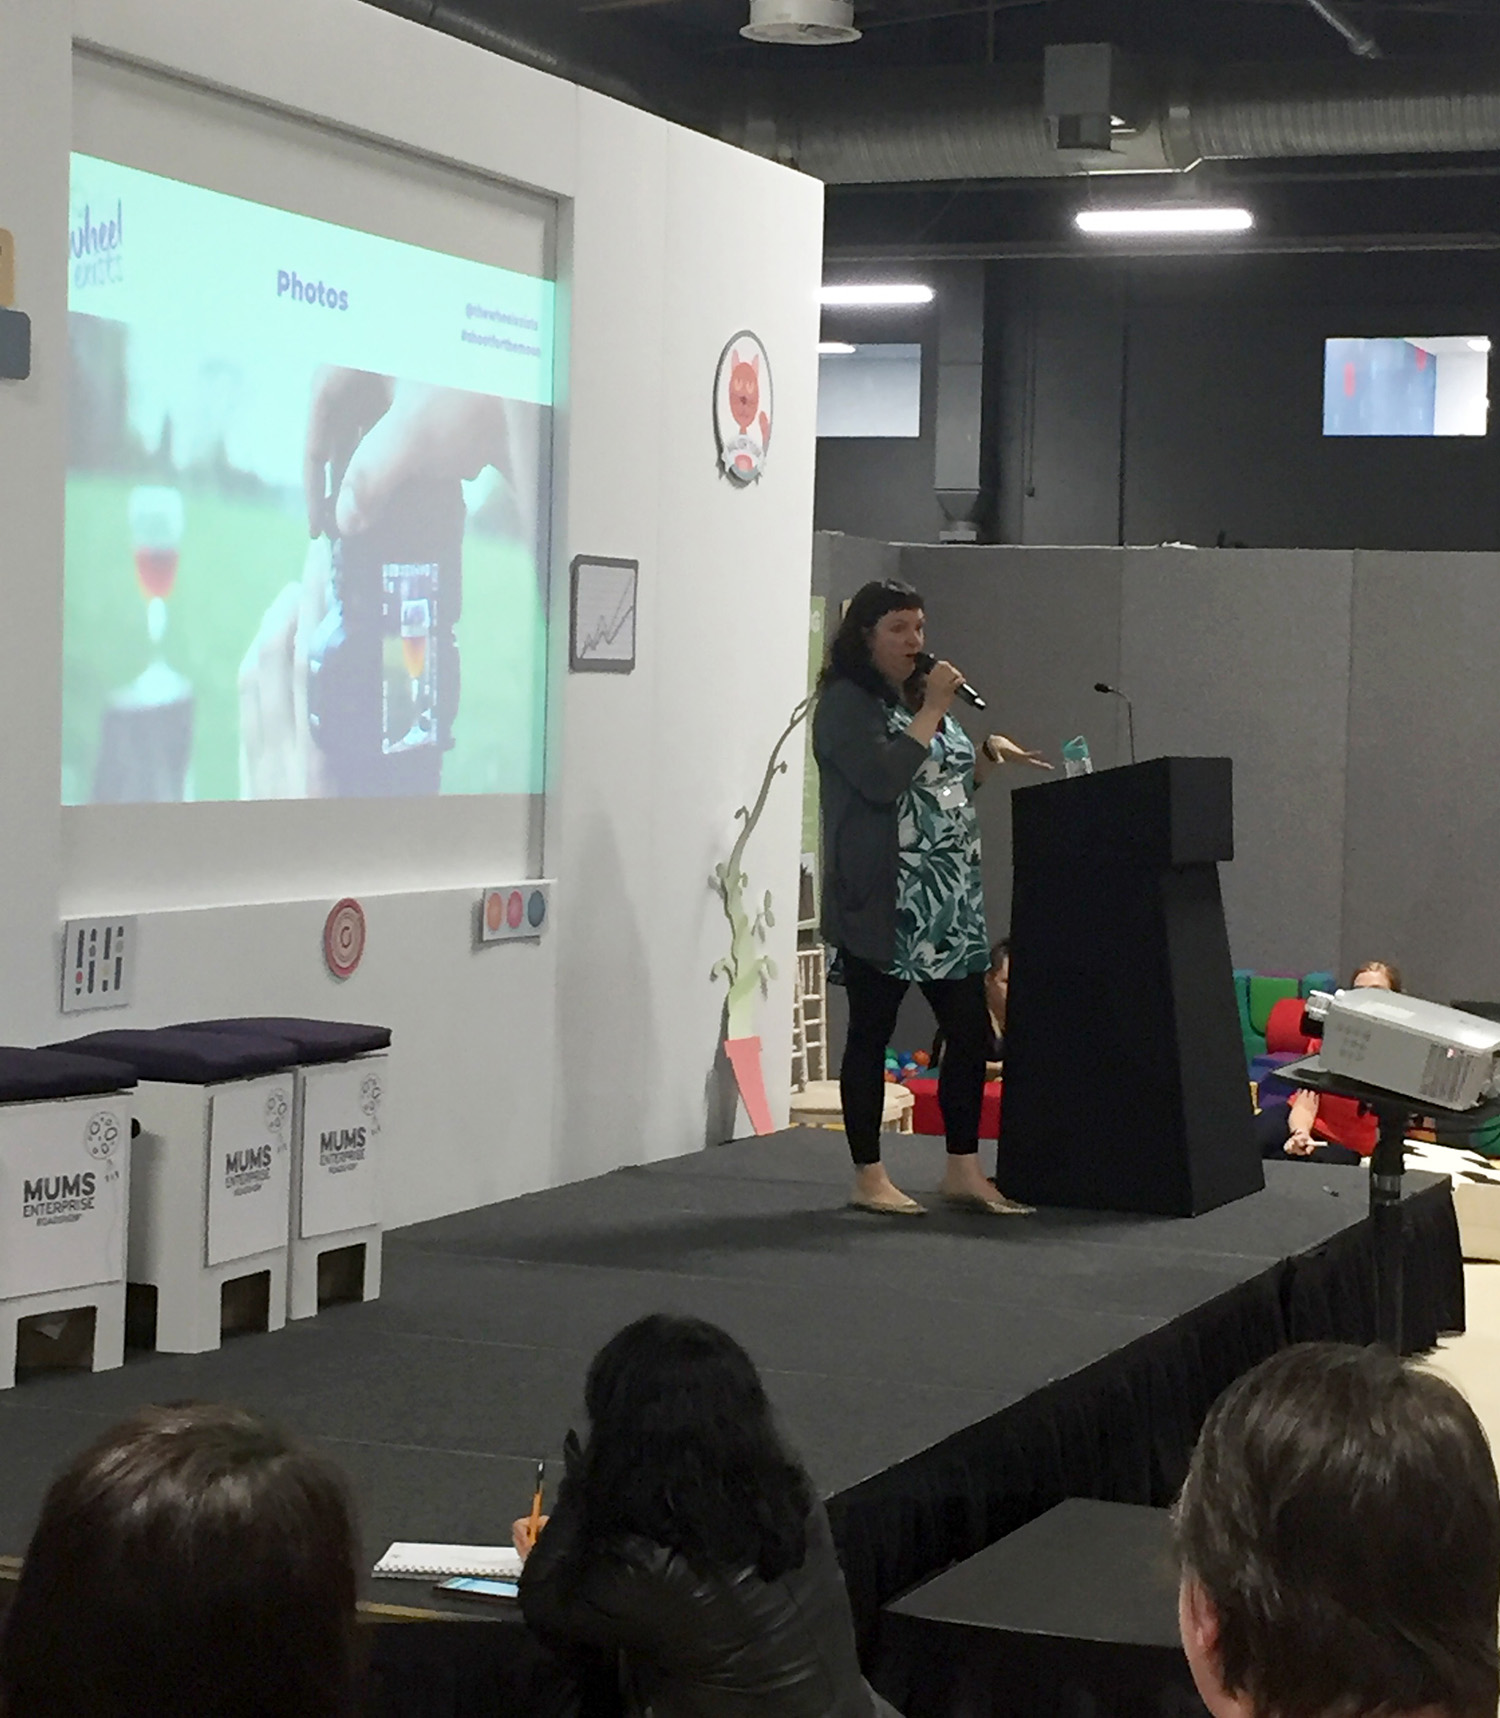 """Presentations and Workshops - I'm happy to talk to any size of audience from 10 to 10,000 on a variety of topics.EXPERIENCE""""I wish I'd known about that tool earlier"""" at The Business Startups Show, London""""Get Organised with Trello"""" at the Google Digital Garage, Sheffield""""Top Tech tools for Freelancers"""" at the Mums Enterprise Roadshow, Manchester""""Digital Productivity"""" and """"Introduction to Squarespace"""" at the DigiEveolution conference, Manchester""""Managing time and being productive"""" and """"Introduction to websites and SEO"""" at the University of Chester""""Create attention grabbing headers"""" at the Women in Rural Enterprise Conference, Shropshire""""Starting out as a freelancer"""" at University Technical College, MediaCity, Salford"""